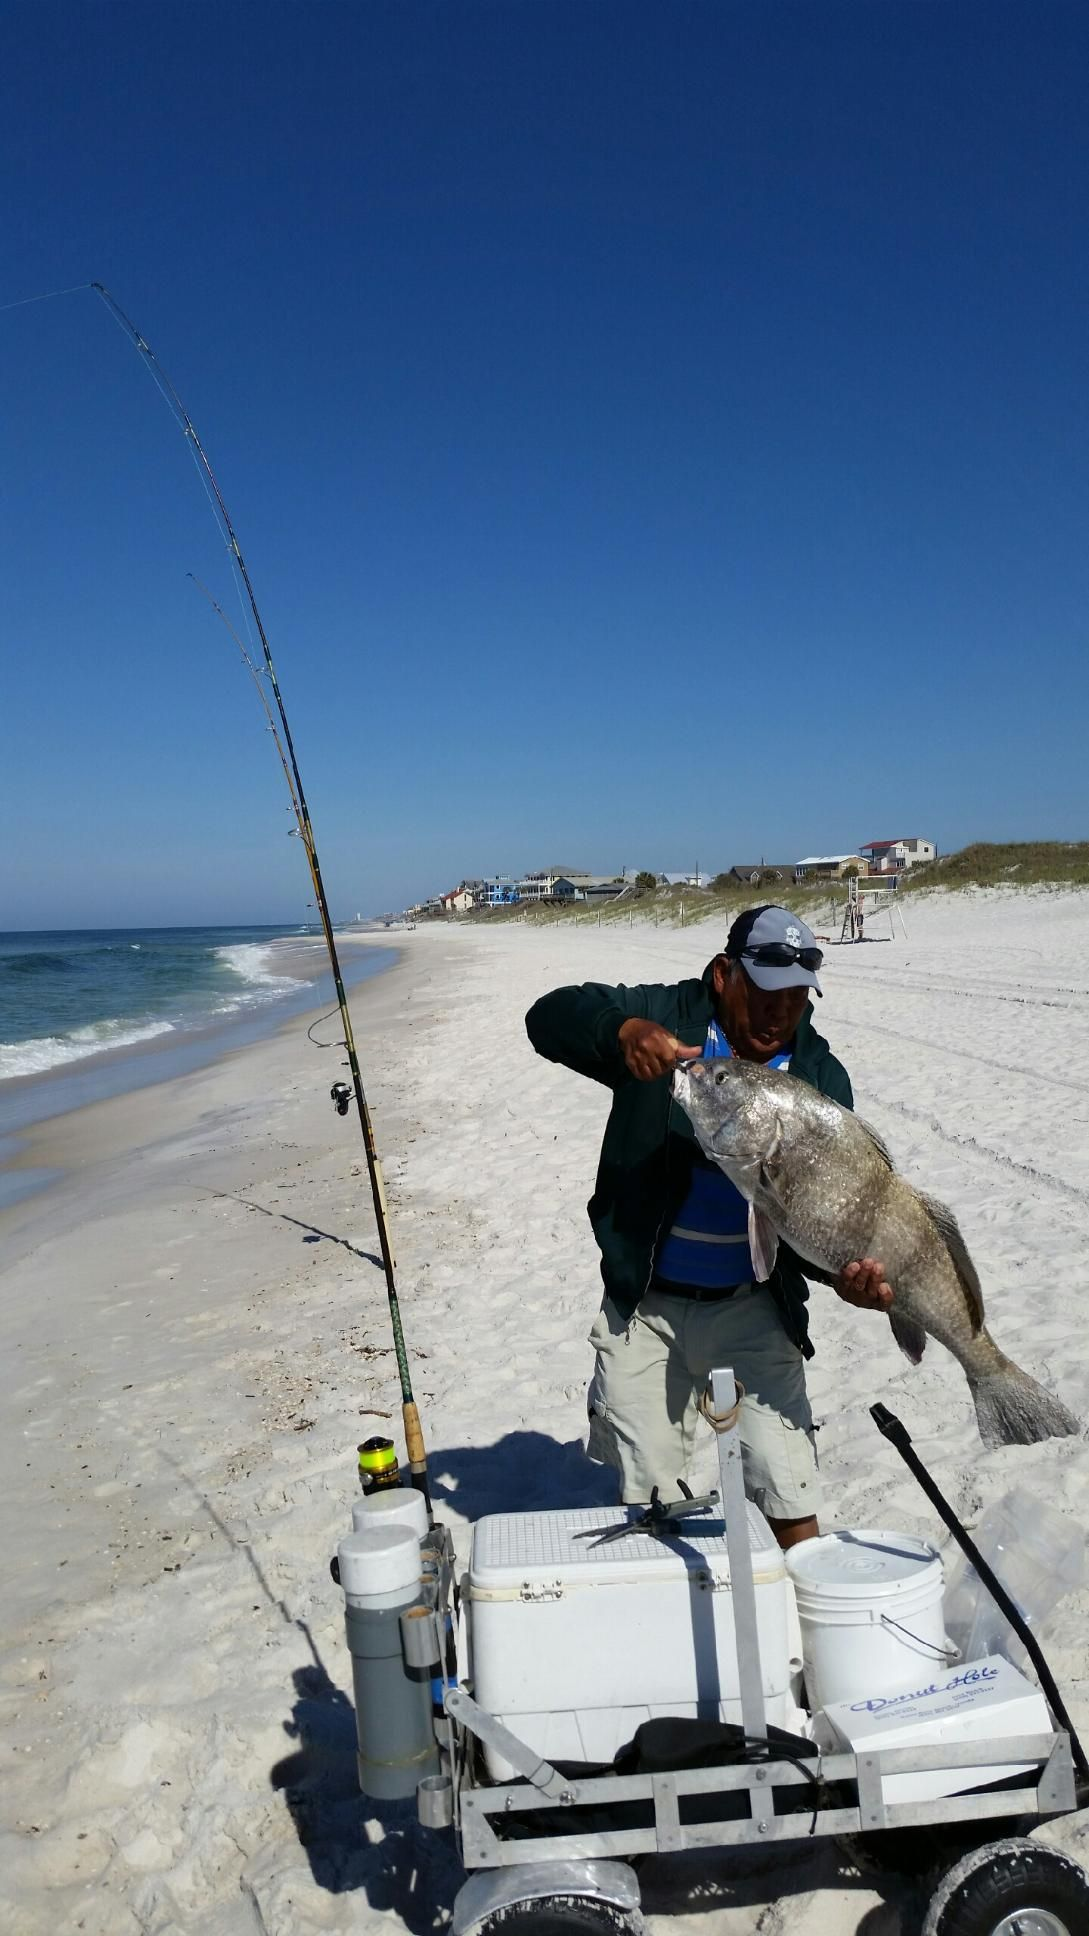 Oops Page Not Found Fort Walton Beach Fishing Guide Florida Home